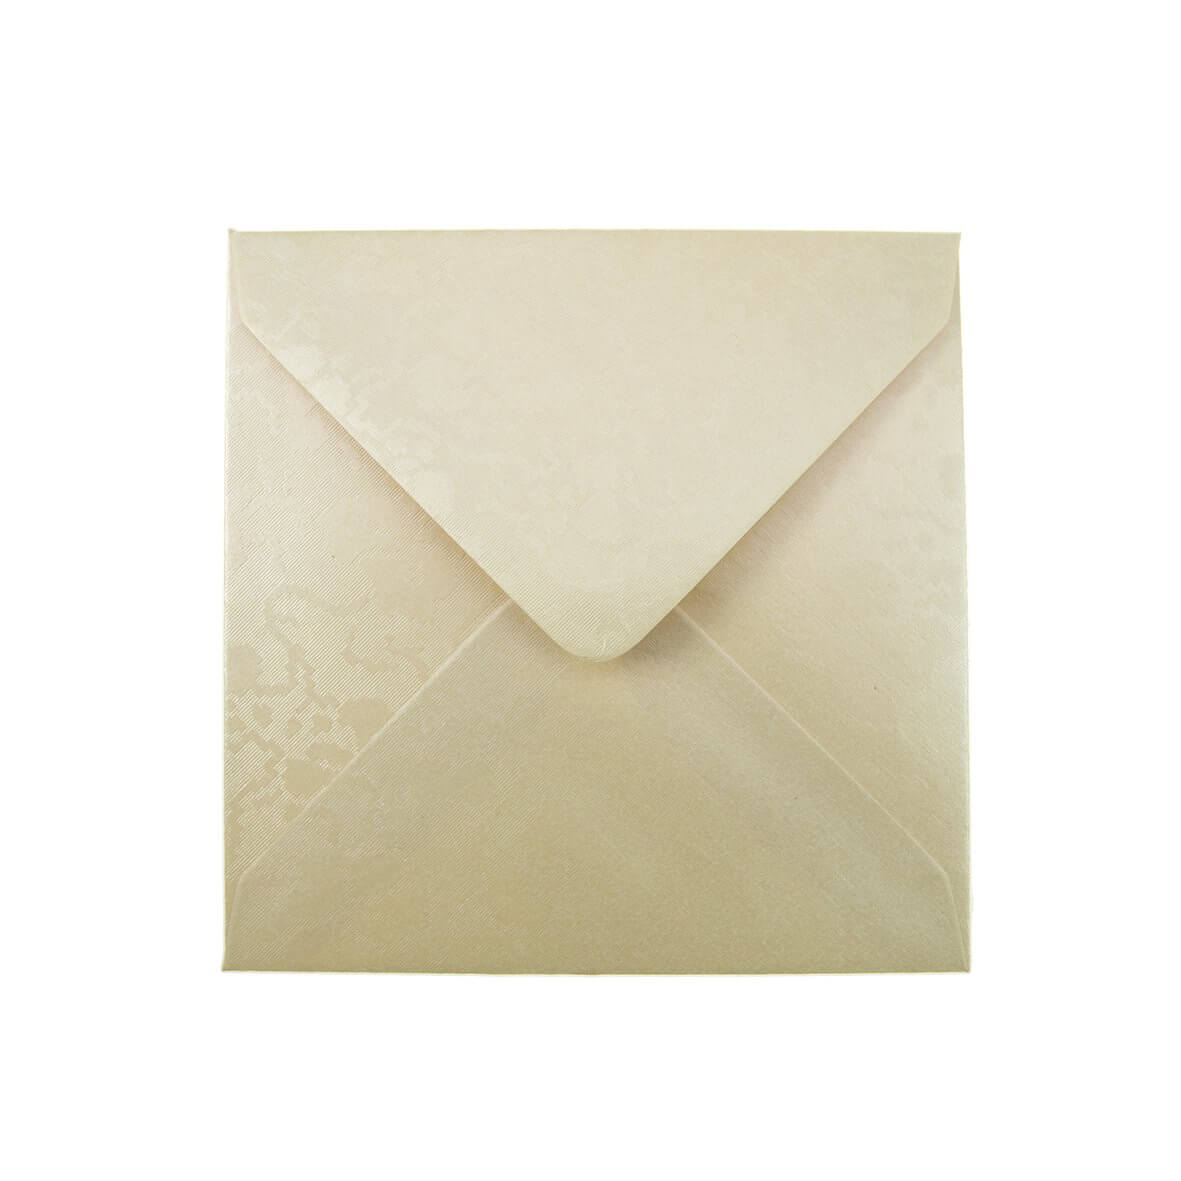 Broderie Cream Small Square 130mm Envelope